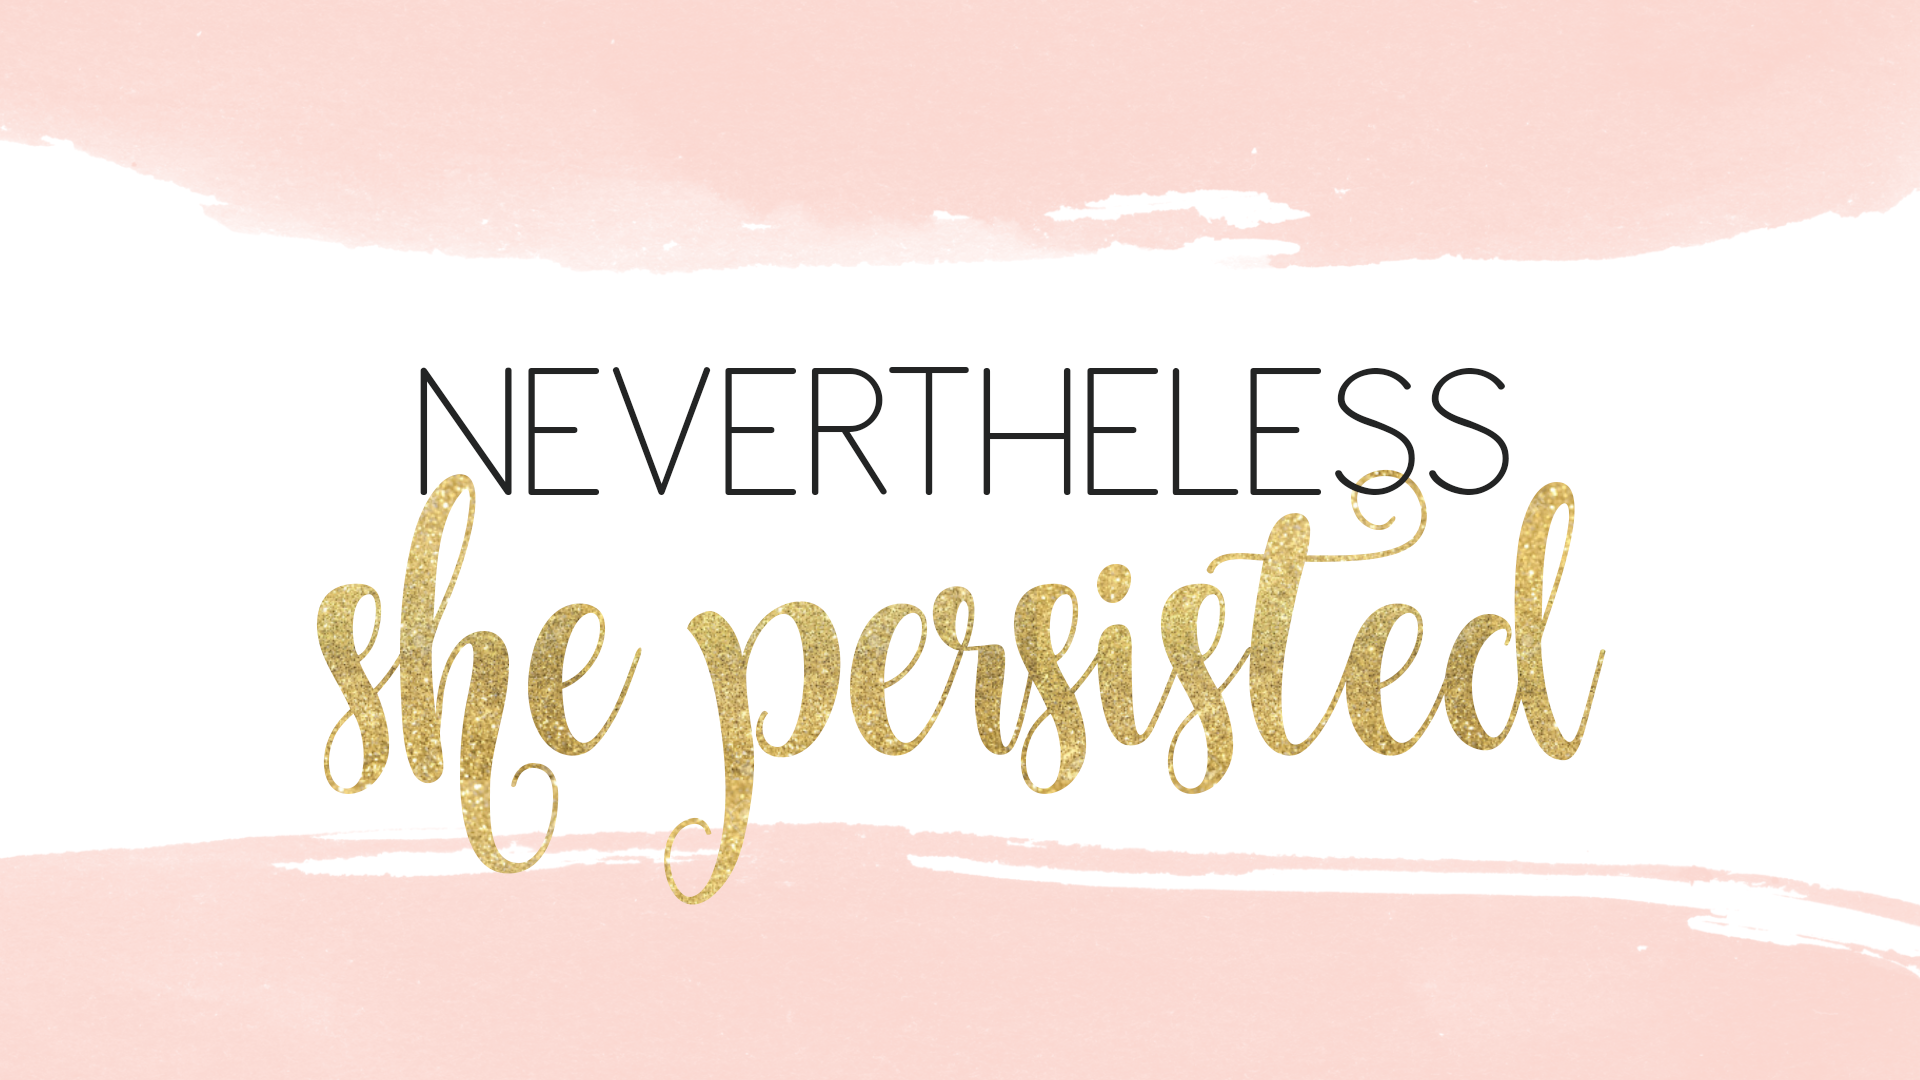 Nevertheless She Persisted | motivational quote for desktop